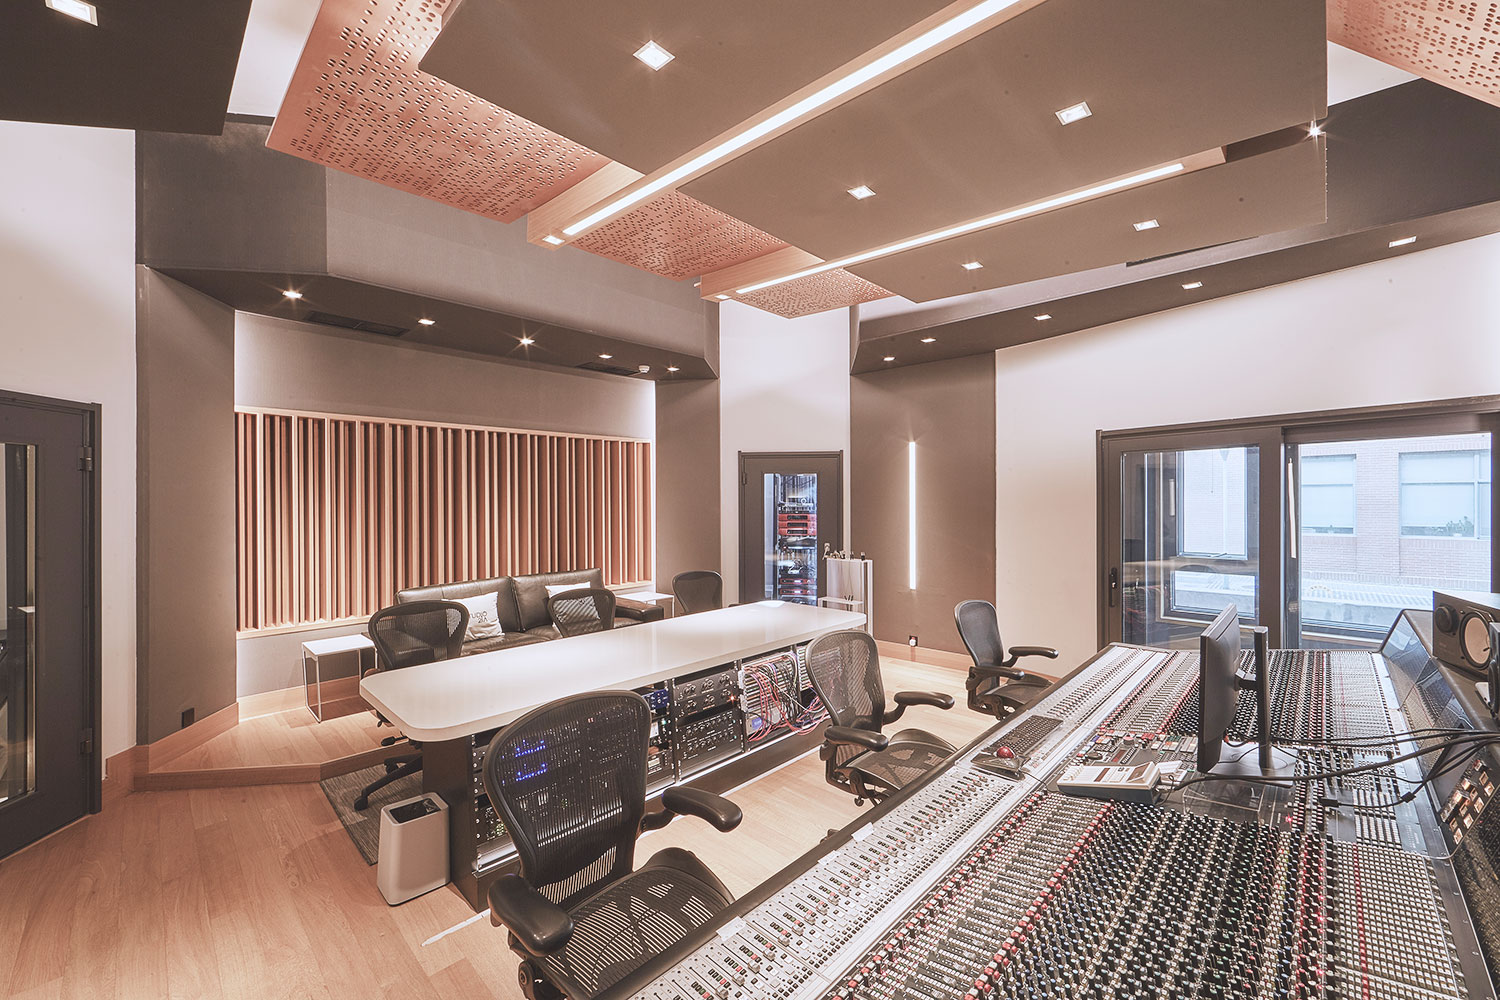 Intrigued by WSDG's reputation in designing the best recording studios in the world, multi-talented recording and mixing engineer TC Zhou started a deep collaboration with our global team for his brand-new Studio 21A facility in Beijing, China. Control Room A 2.